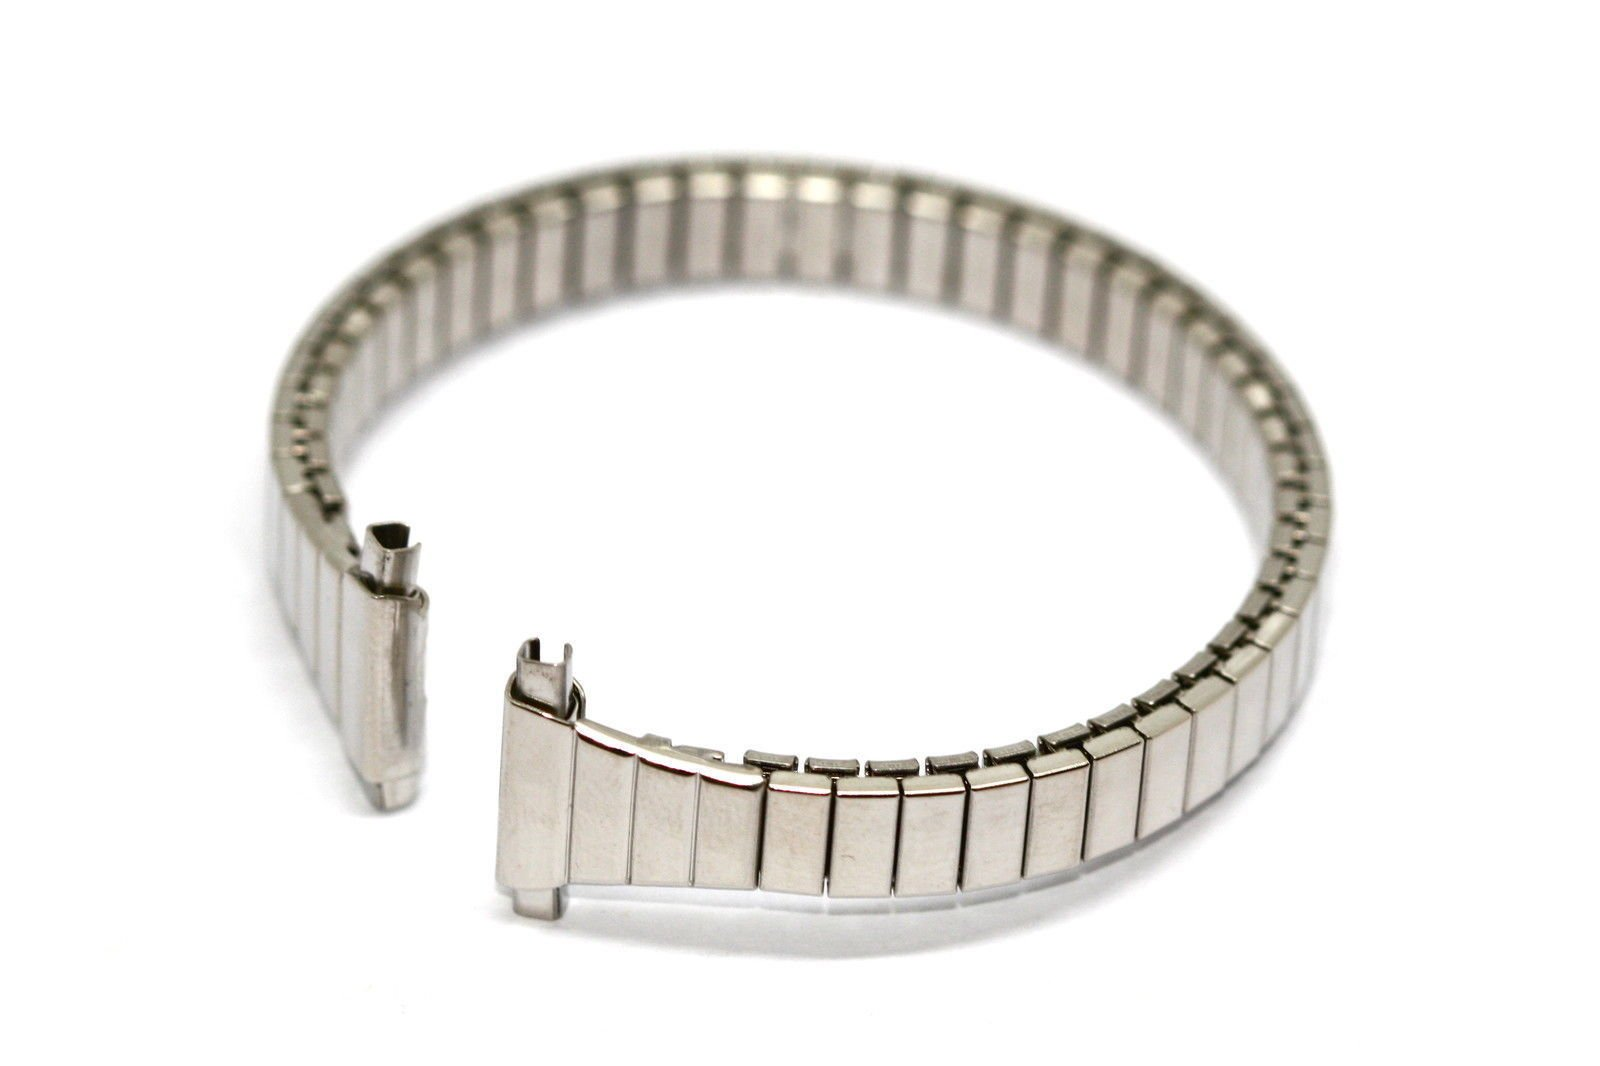 SPEIDEL 11-14MM SHORT SILVER STAINLESS STEEL EXPANSION STRAP WATCH BAND